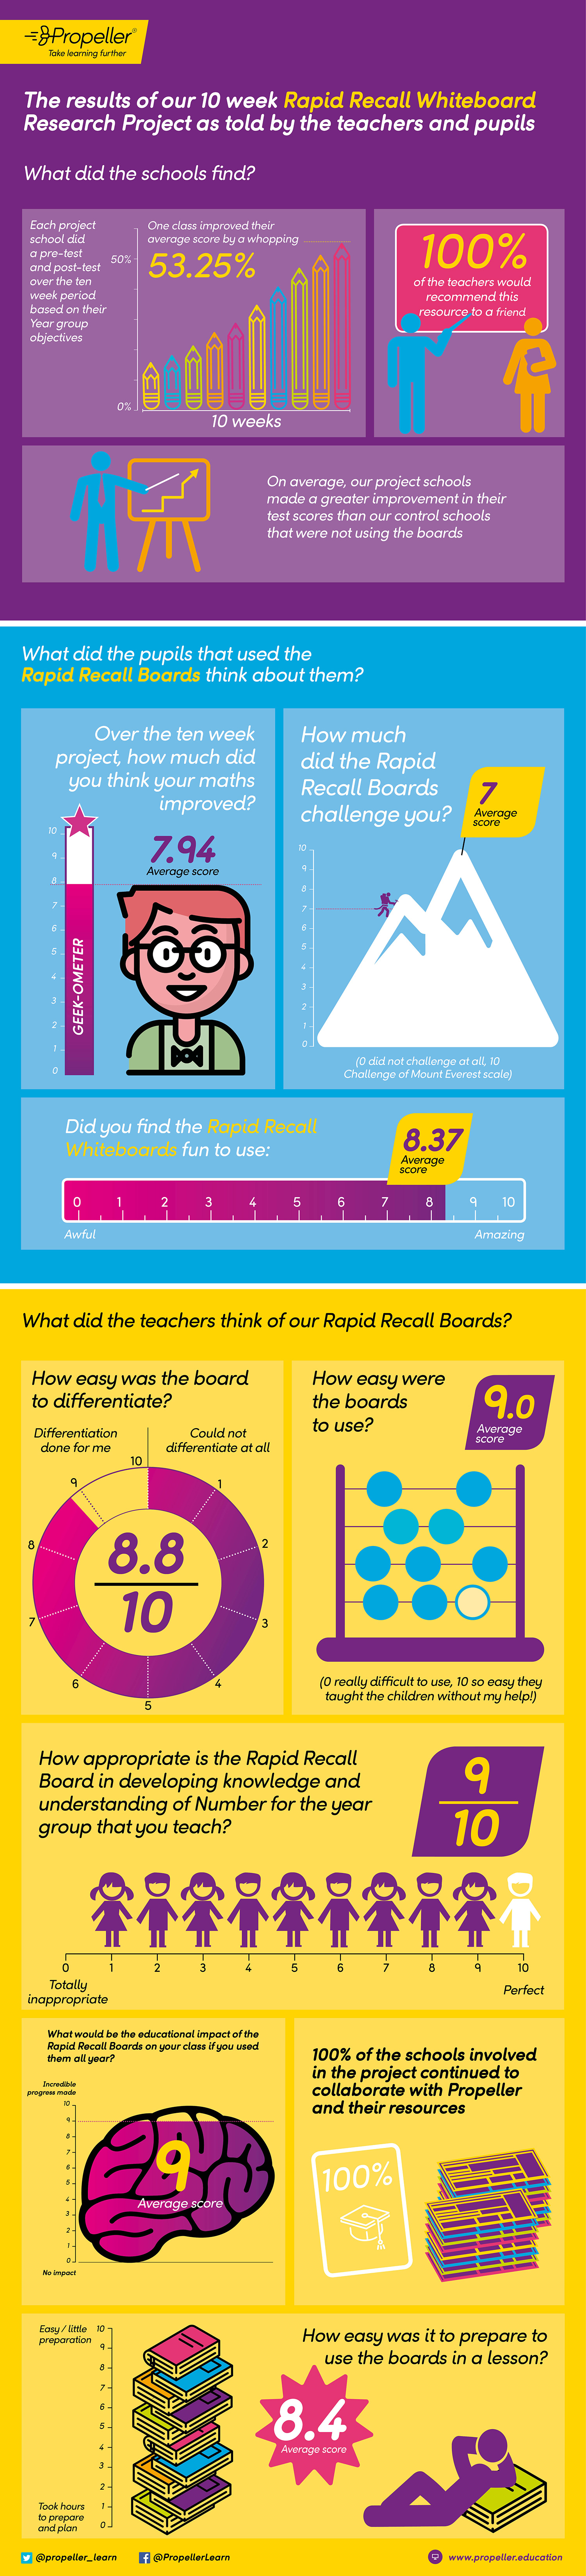 Rapid Recall Research Project Infographic Results